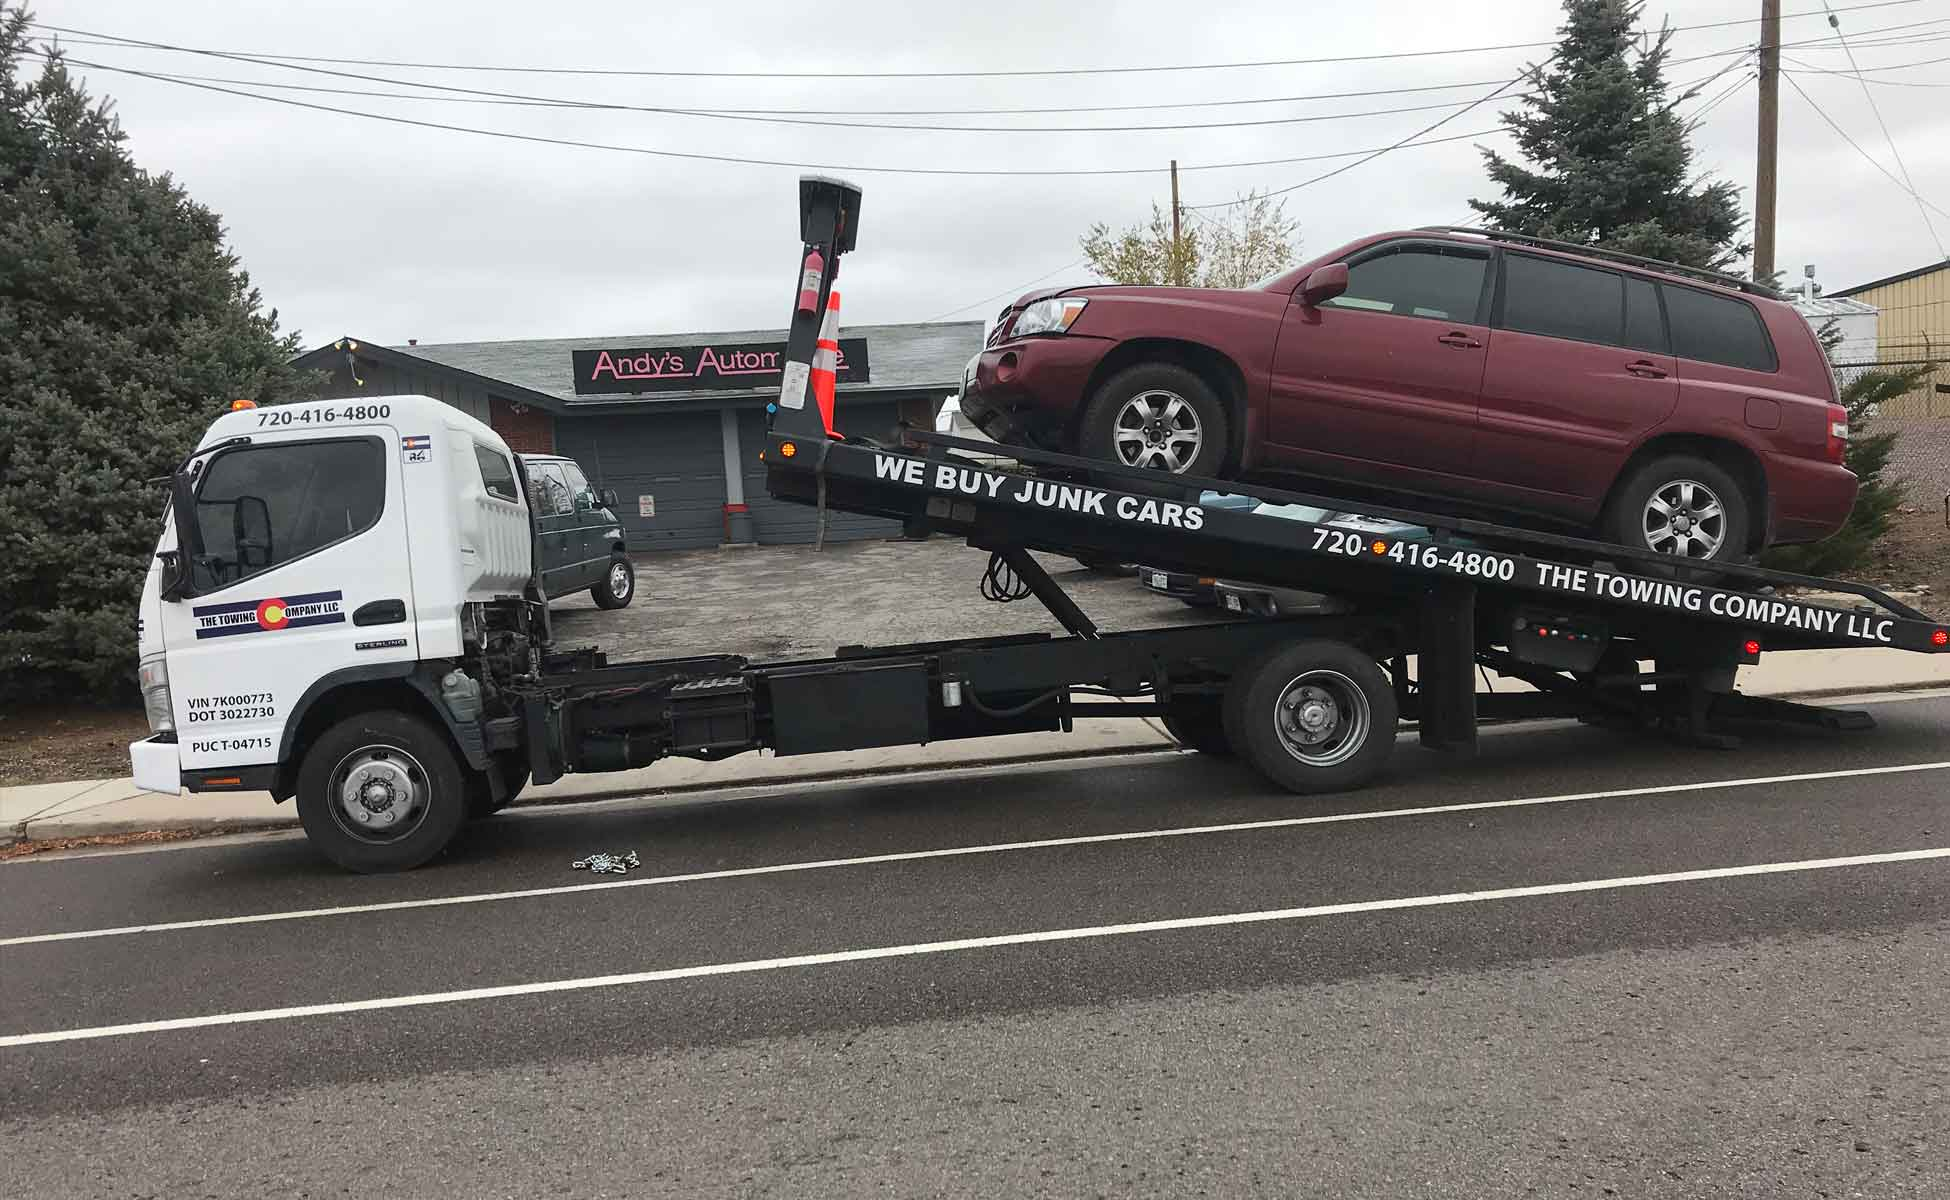 24-7-towing-service